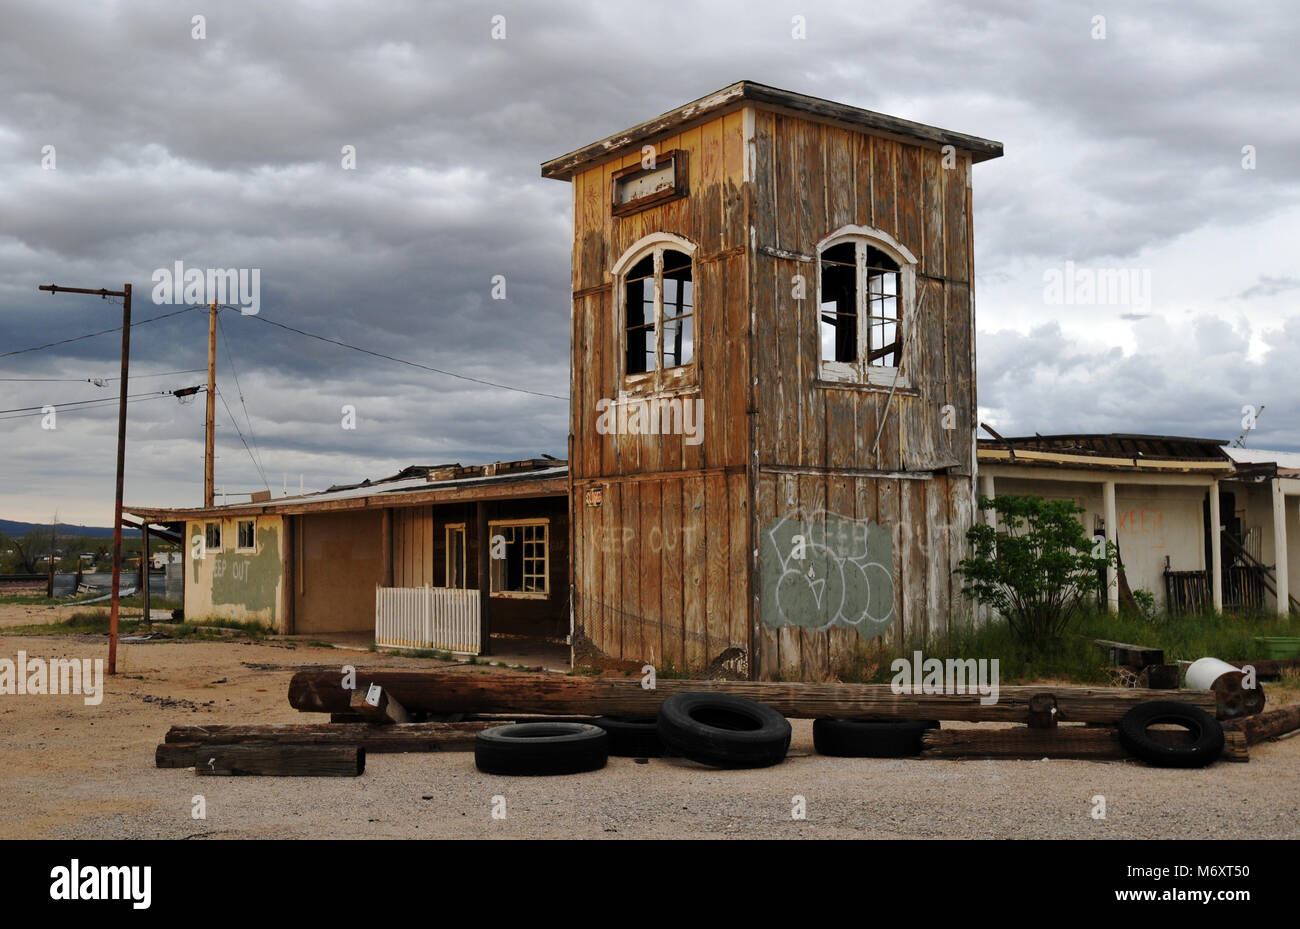 The former general store in the Route 66 ghost town of Goffs, California stands abandoned. Stock Photo